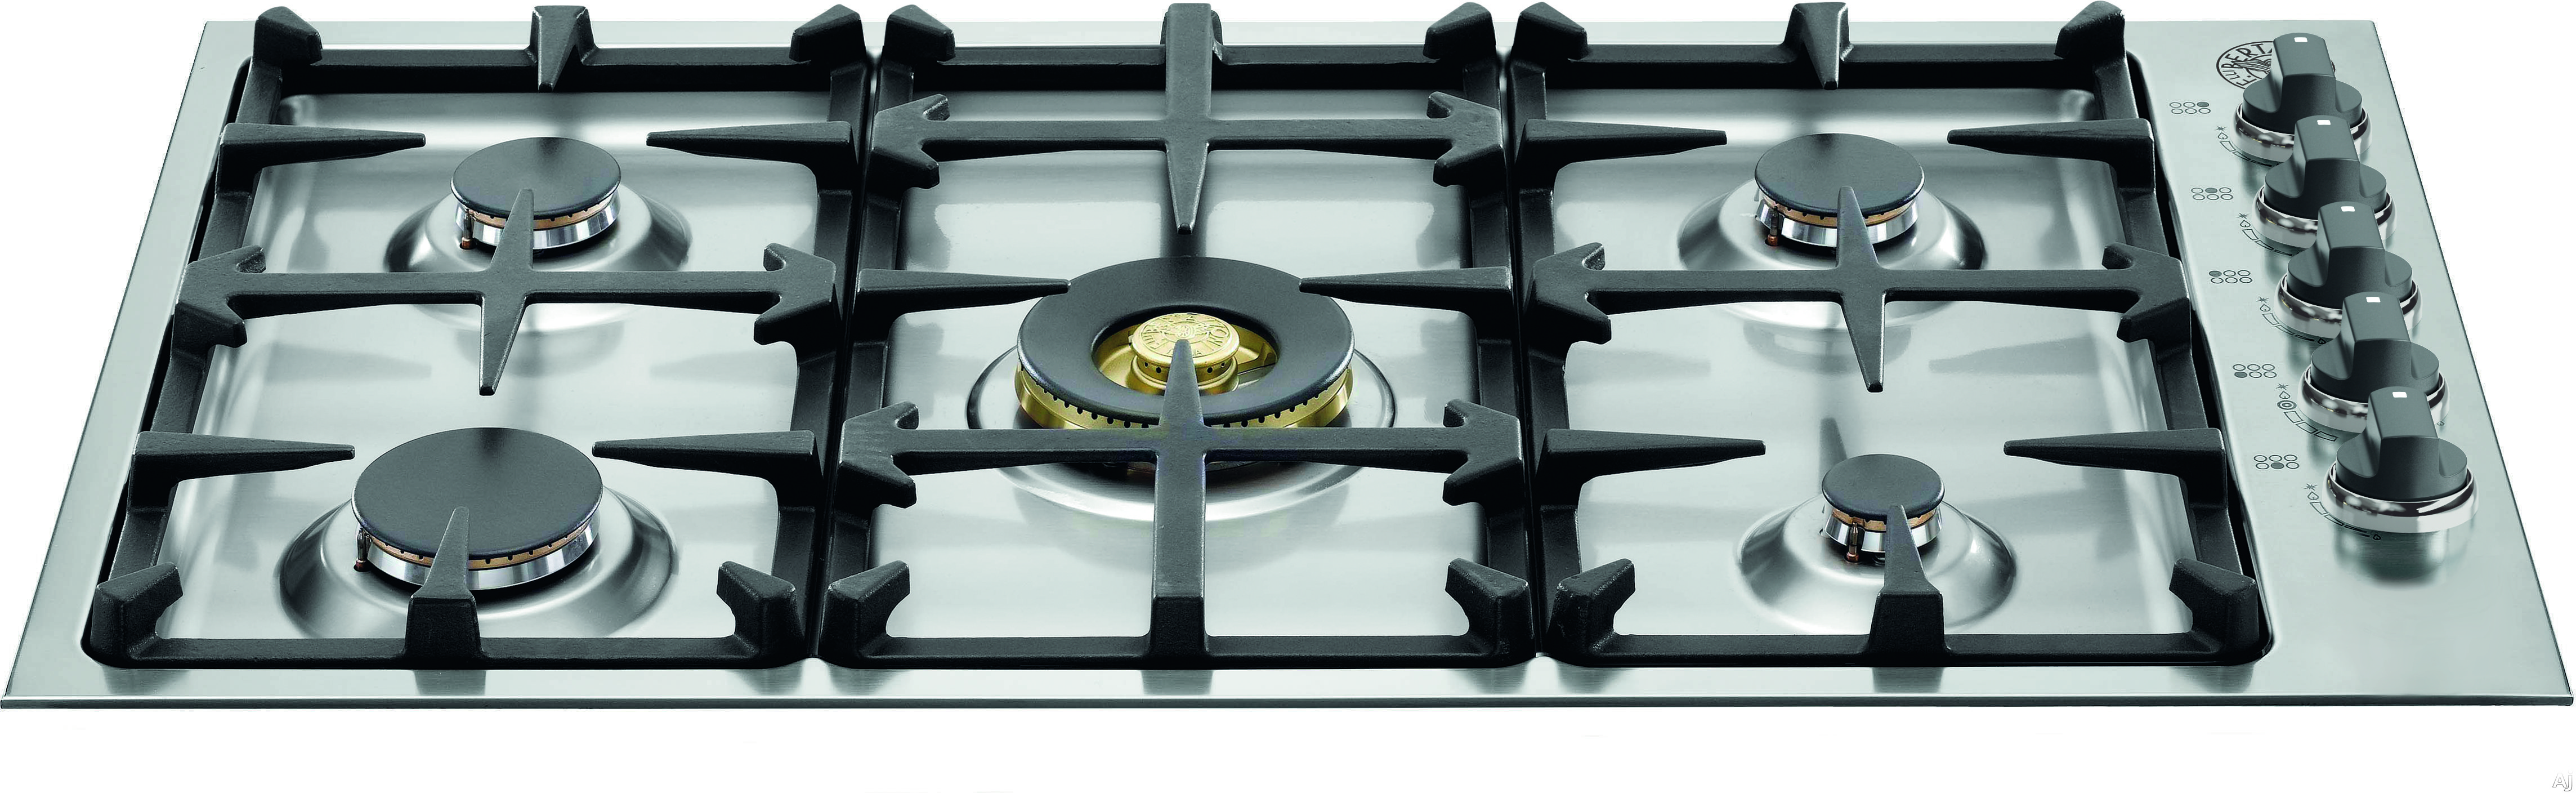 Bertazzoni QB36M500XLP 36 Inch Gas Cooktop with 5 Sealed Brass Burners, 18,000 BTU Dual-Ring Power Burner, Continuous Cast Iron Grates and Electronic Ignition: Liquid Propane